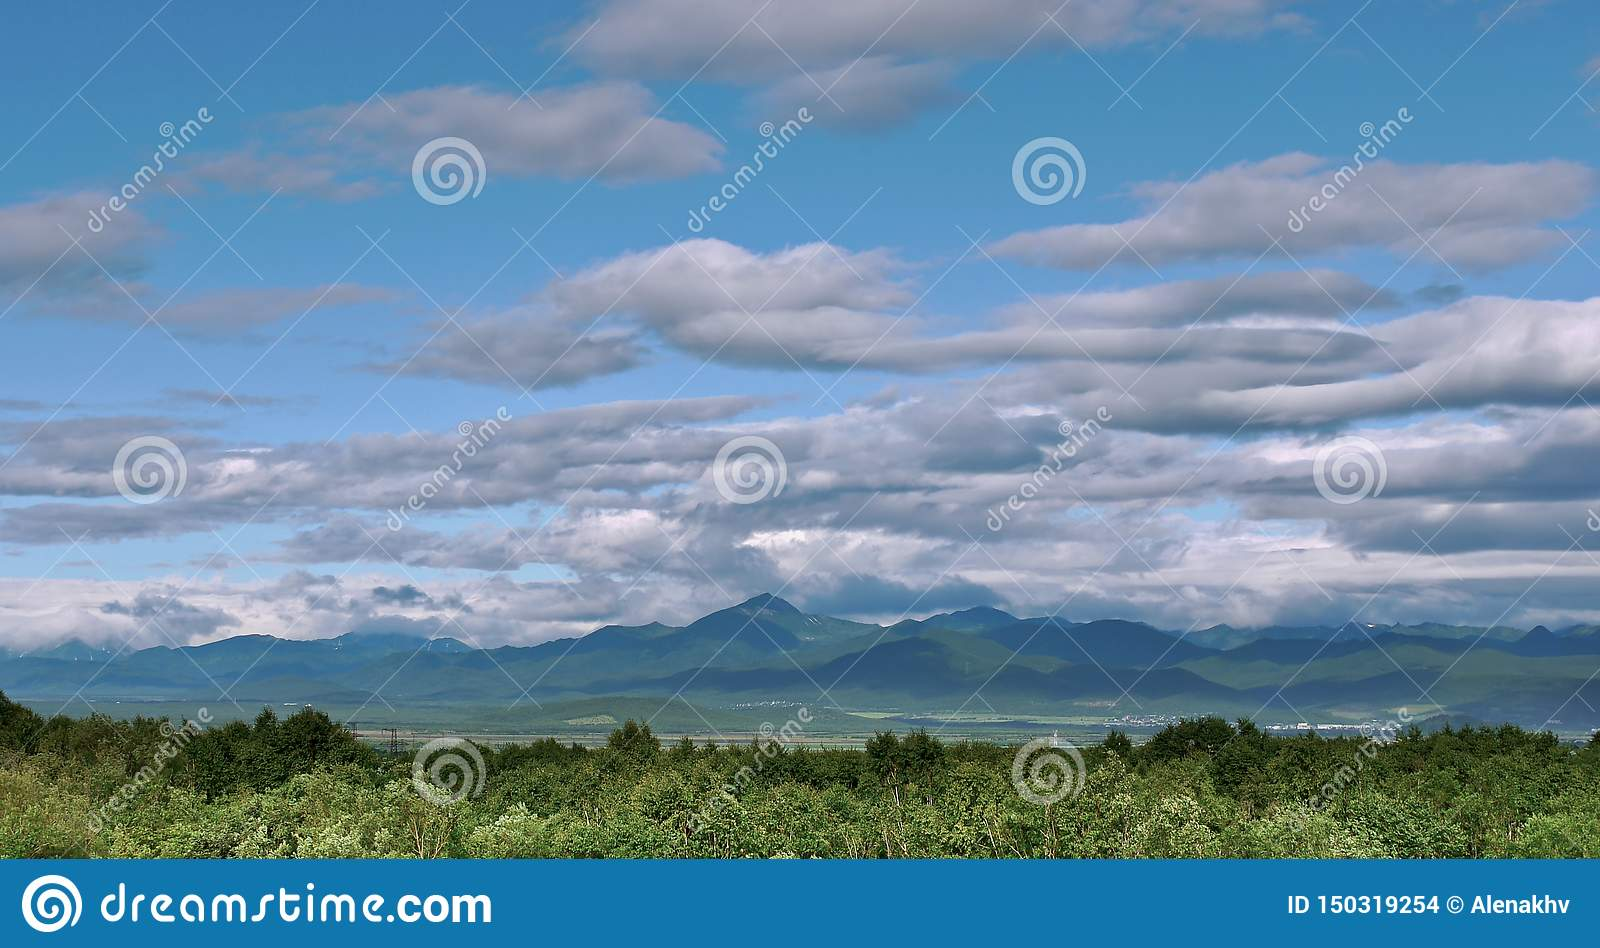 Panoramic view of beautiful clouds over a green hill valley